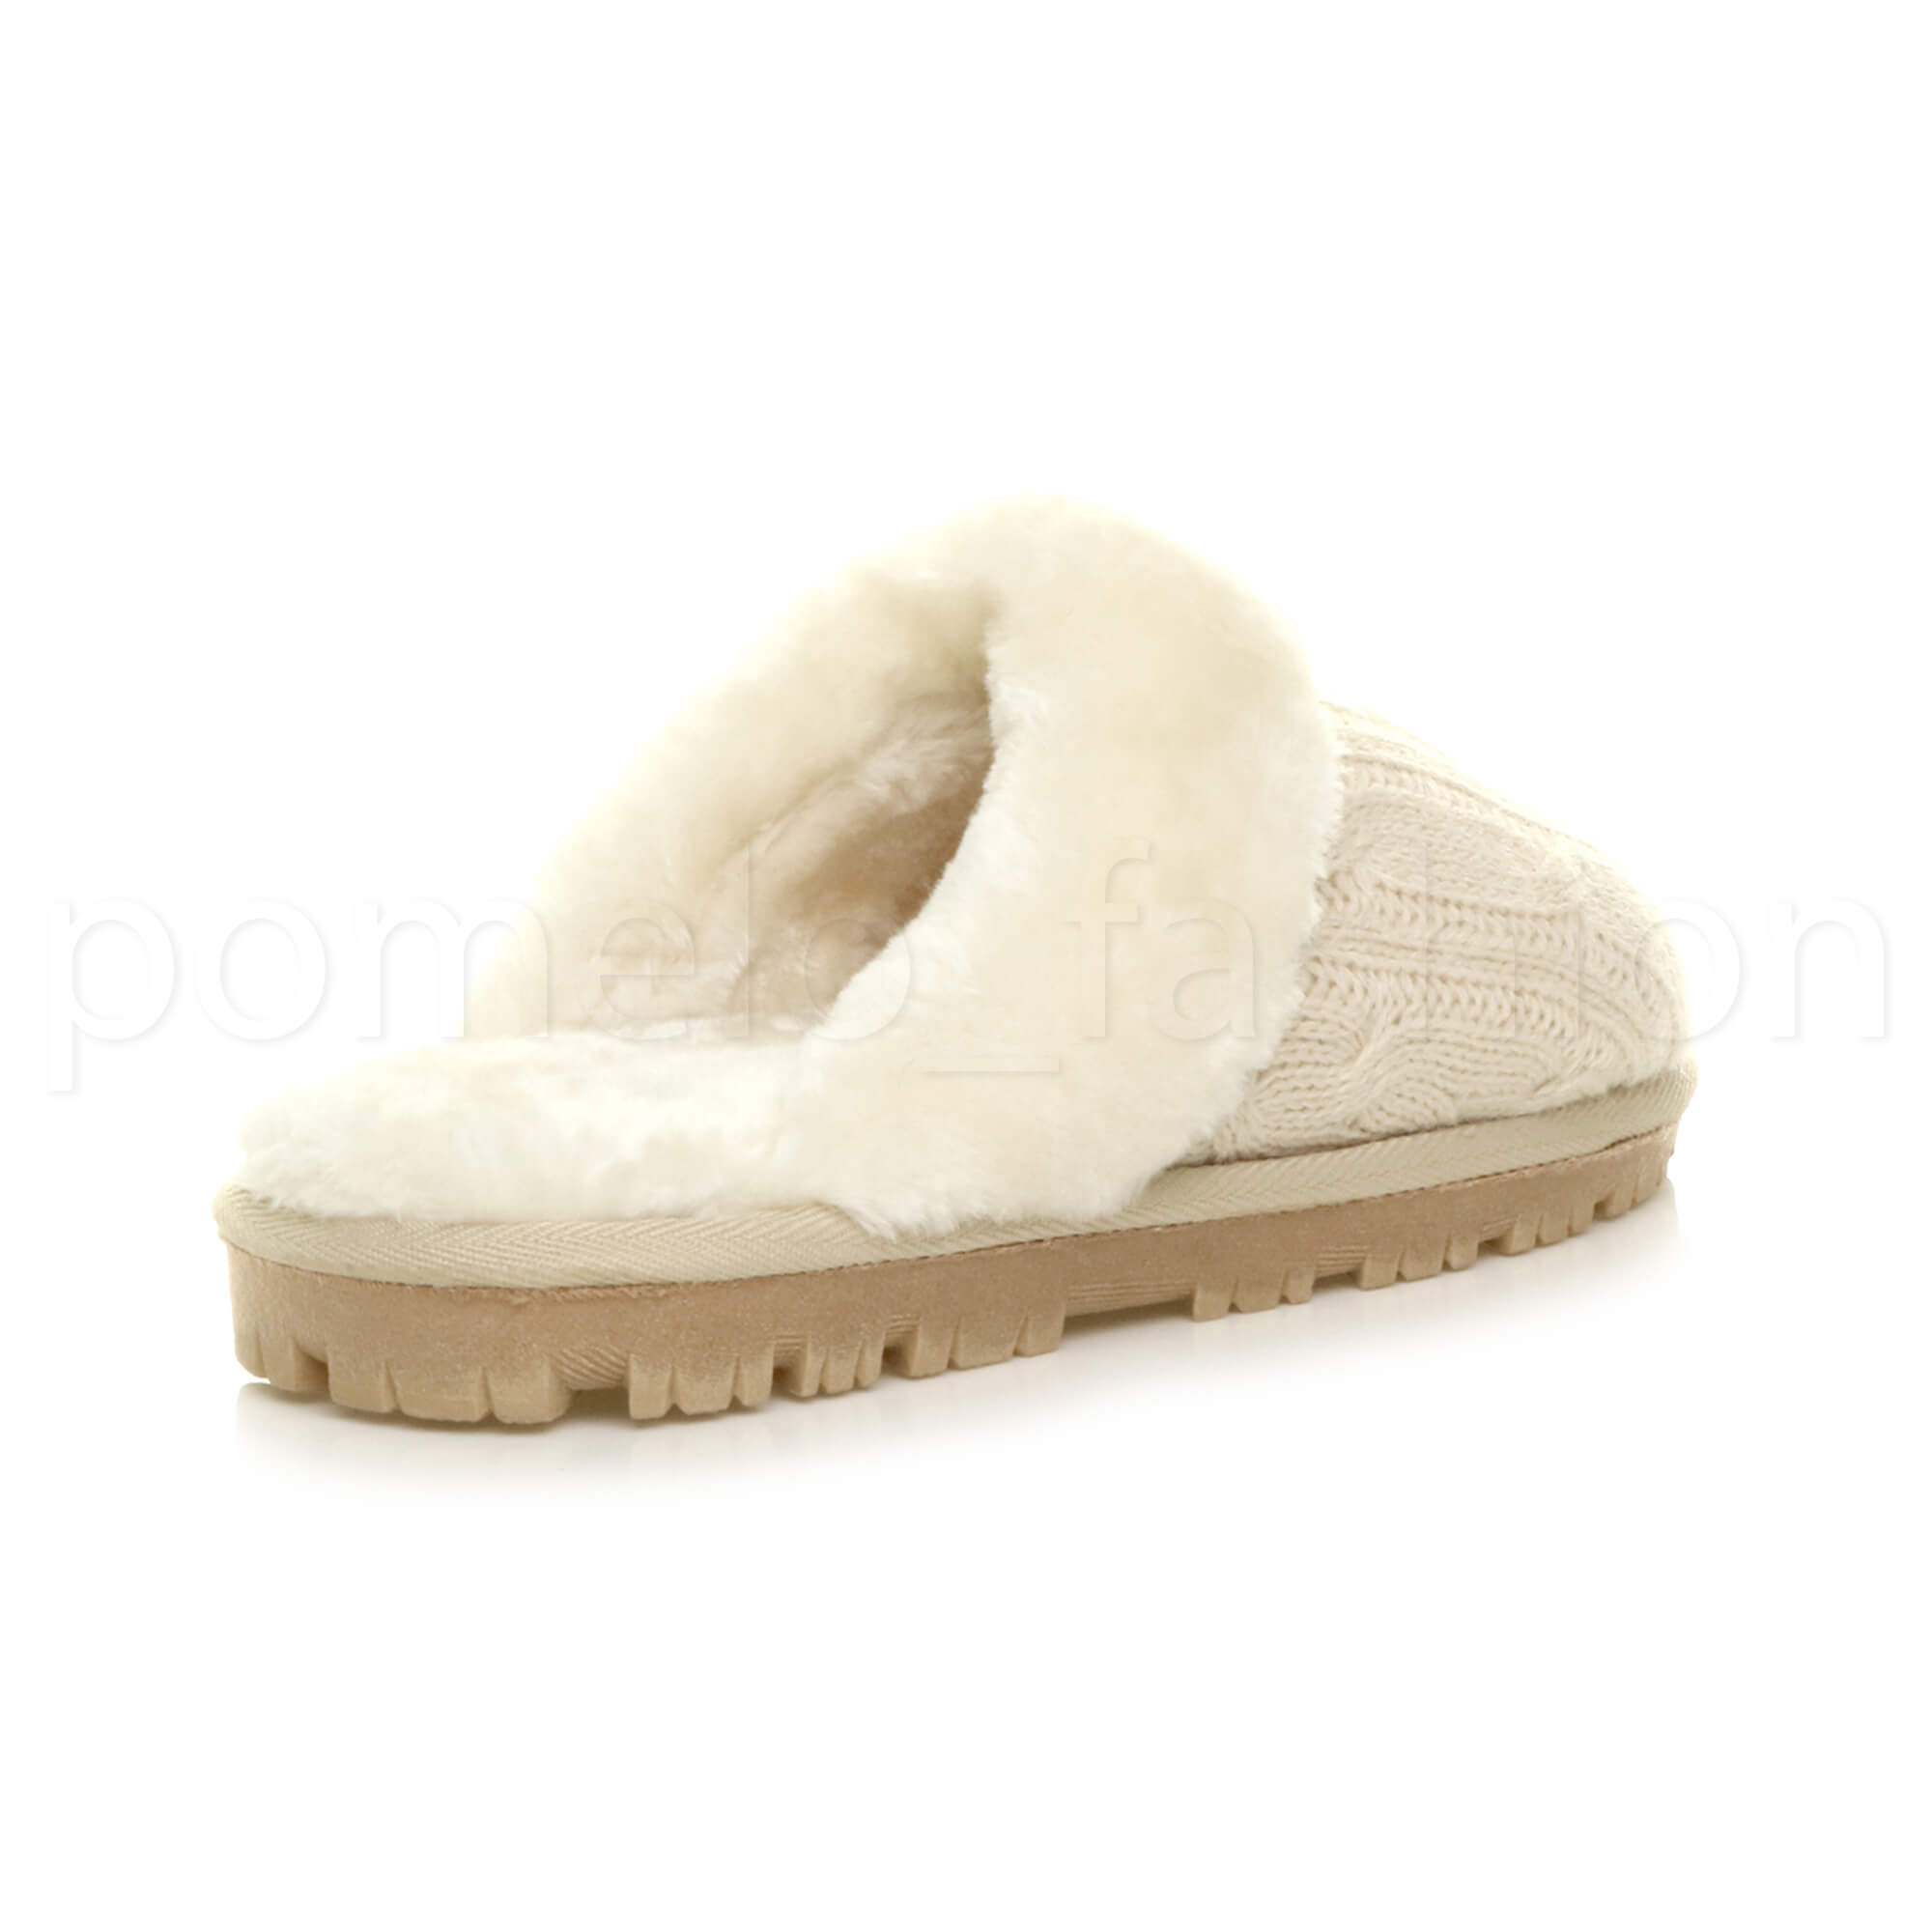 WOMENS-LADIES-FLAT-FUR-LINED-COMFORTABLE-WINTER-MULES-SLIPPERS-HOUSE-SHOES-SIZE thumbnail 12